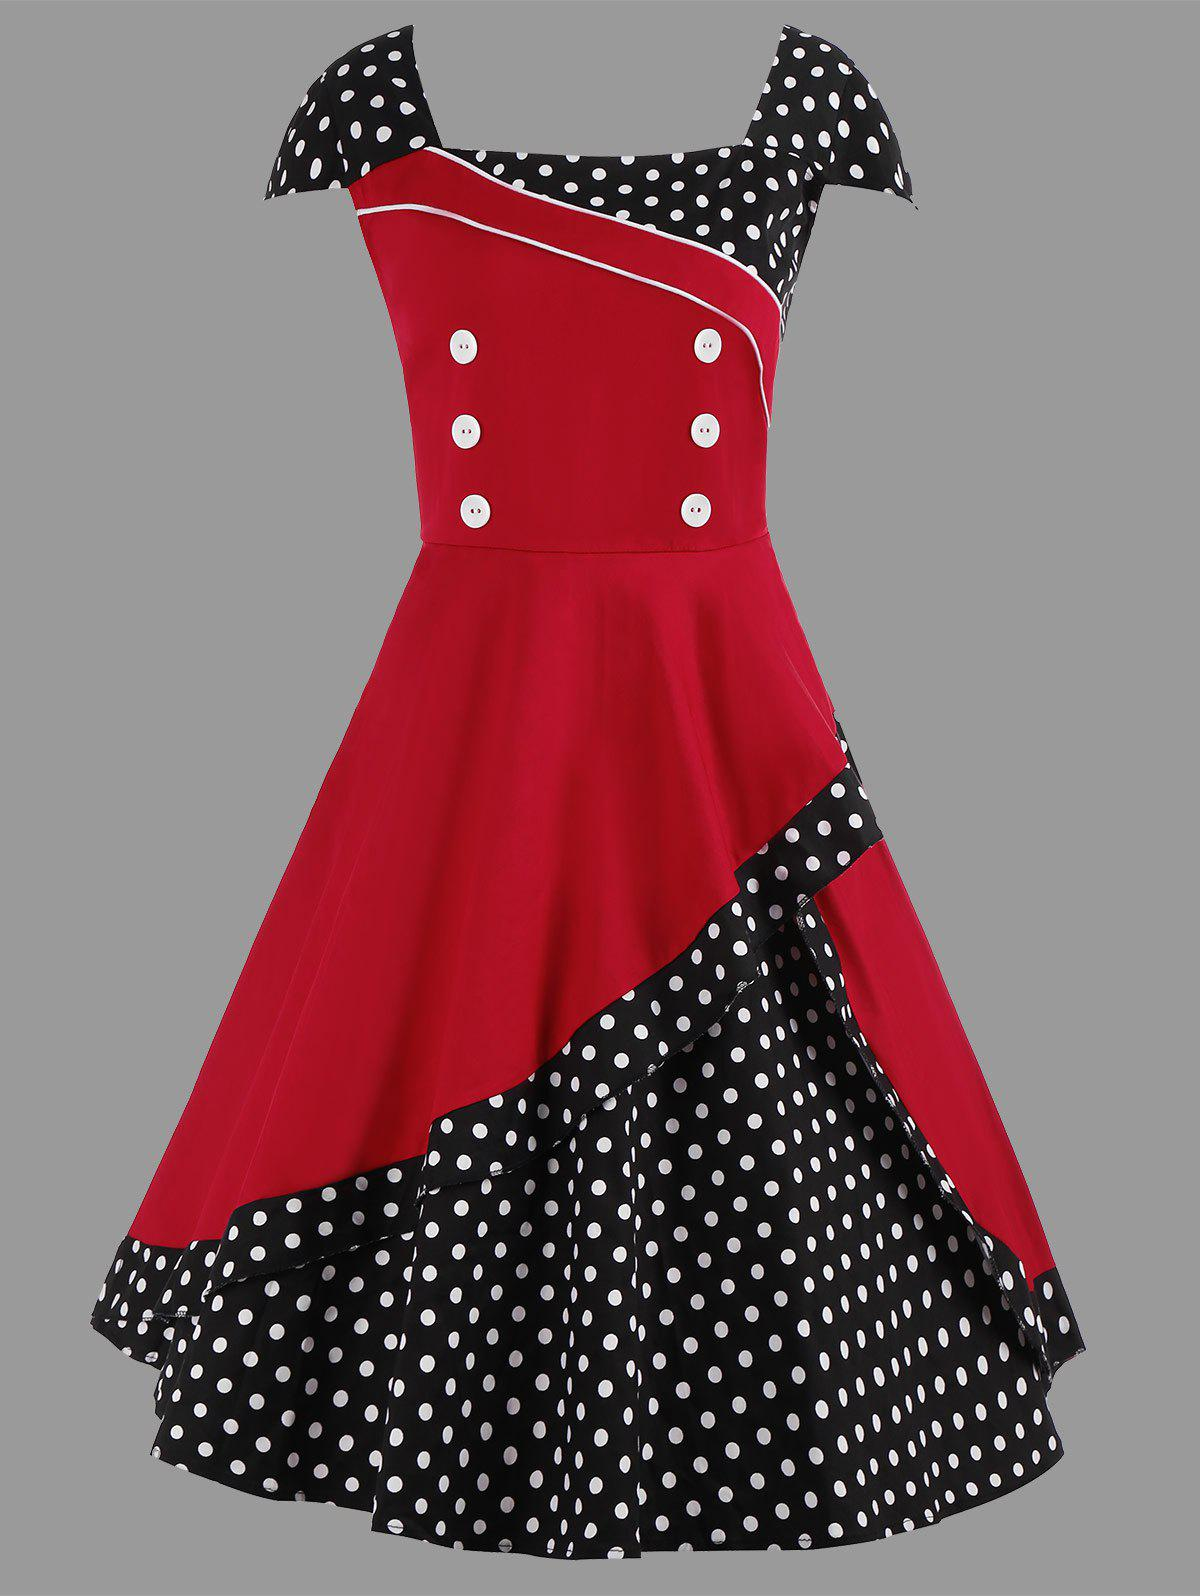 Midi Polka Dot Vintage Plus Size Skater DressWOMEN<br><br>Size: 4XL; Color: RED; Style: Vintage; Material: Polyester; Silhouette: A-Line; Dresses Length: Mid-Calf; Neckline: Square Collar; Sleeve Type: Cap Sleeve; Sleeve Length: Short Sleeves; Pattern Type: Polka Dot; With Belt: No; Season: Summer; Weight: 0.5000kg; Package Contents: 1 x Dress;